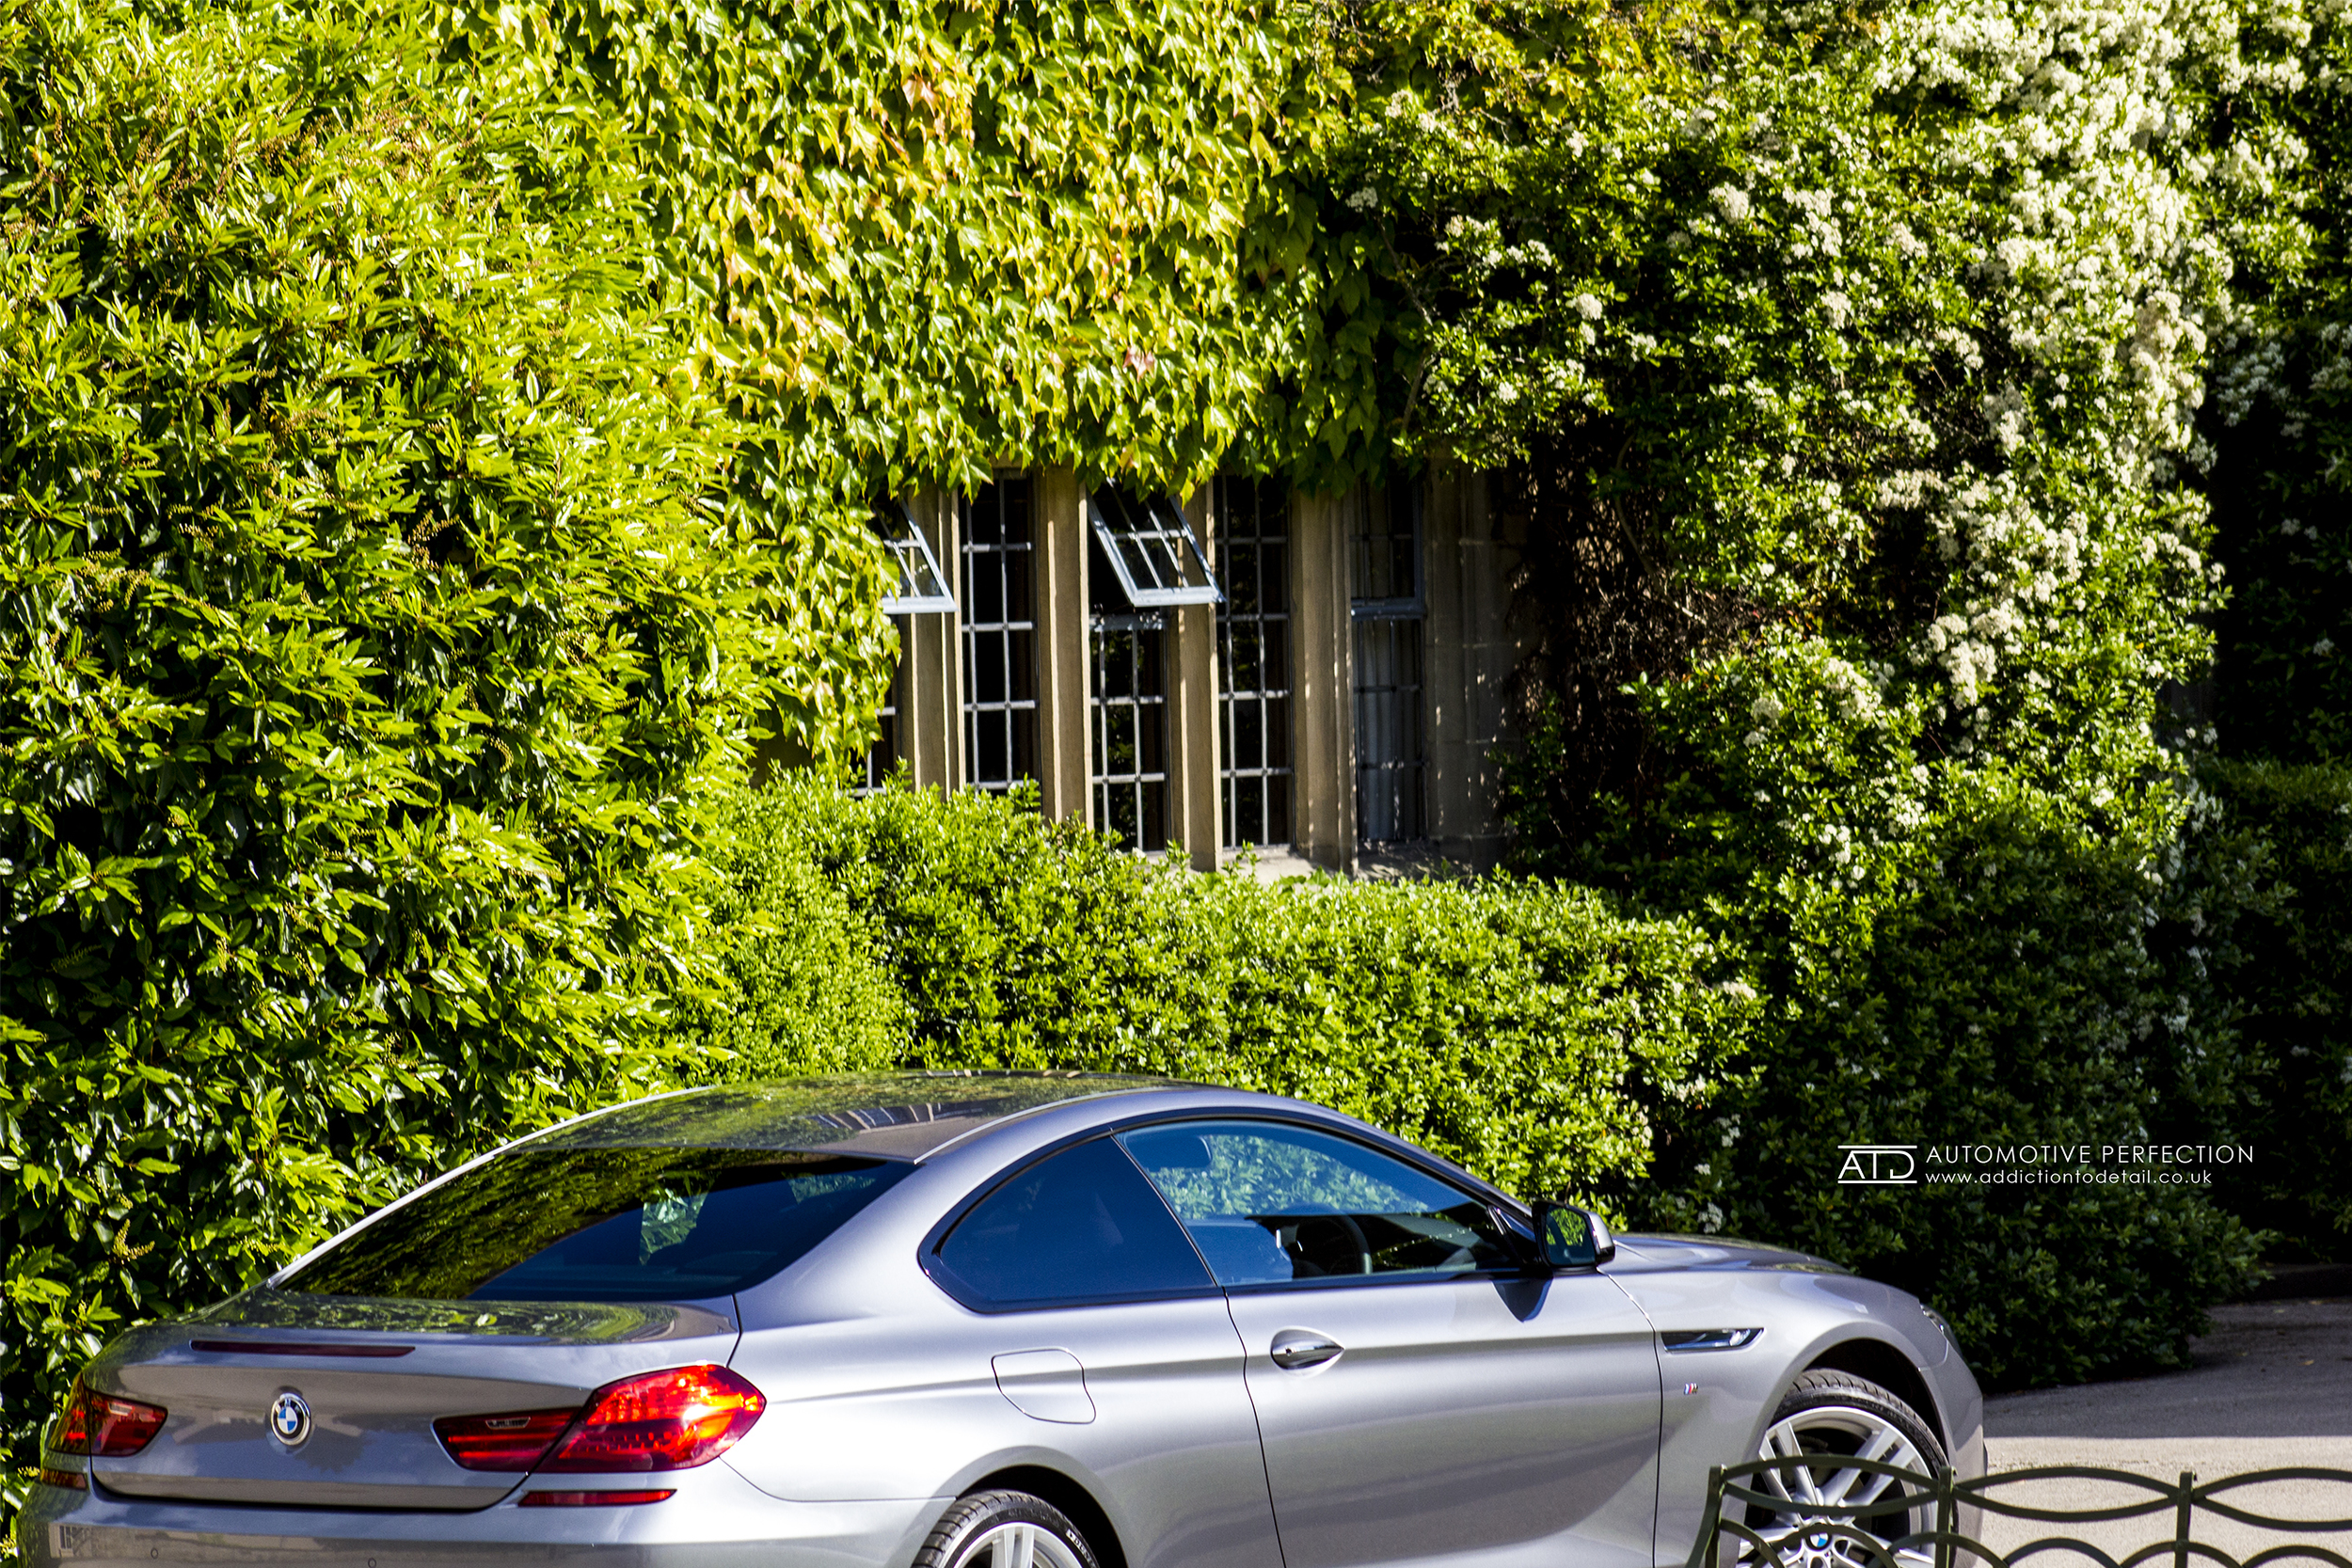 640D_Coupe_Photoshoot__0022_Image_012.jpg